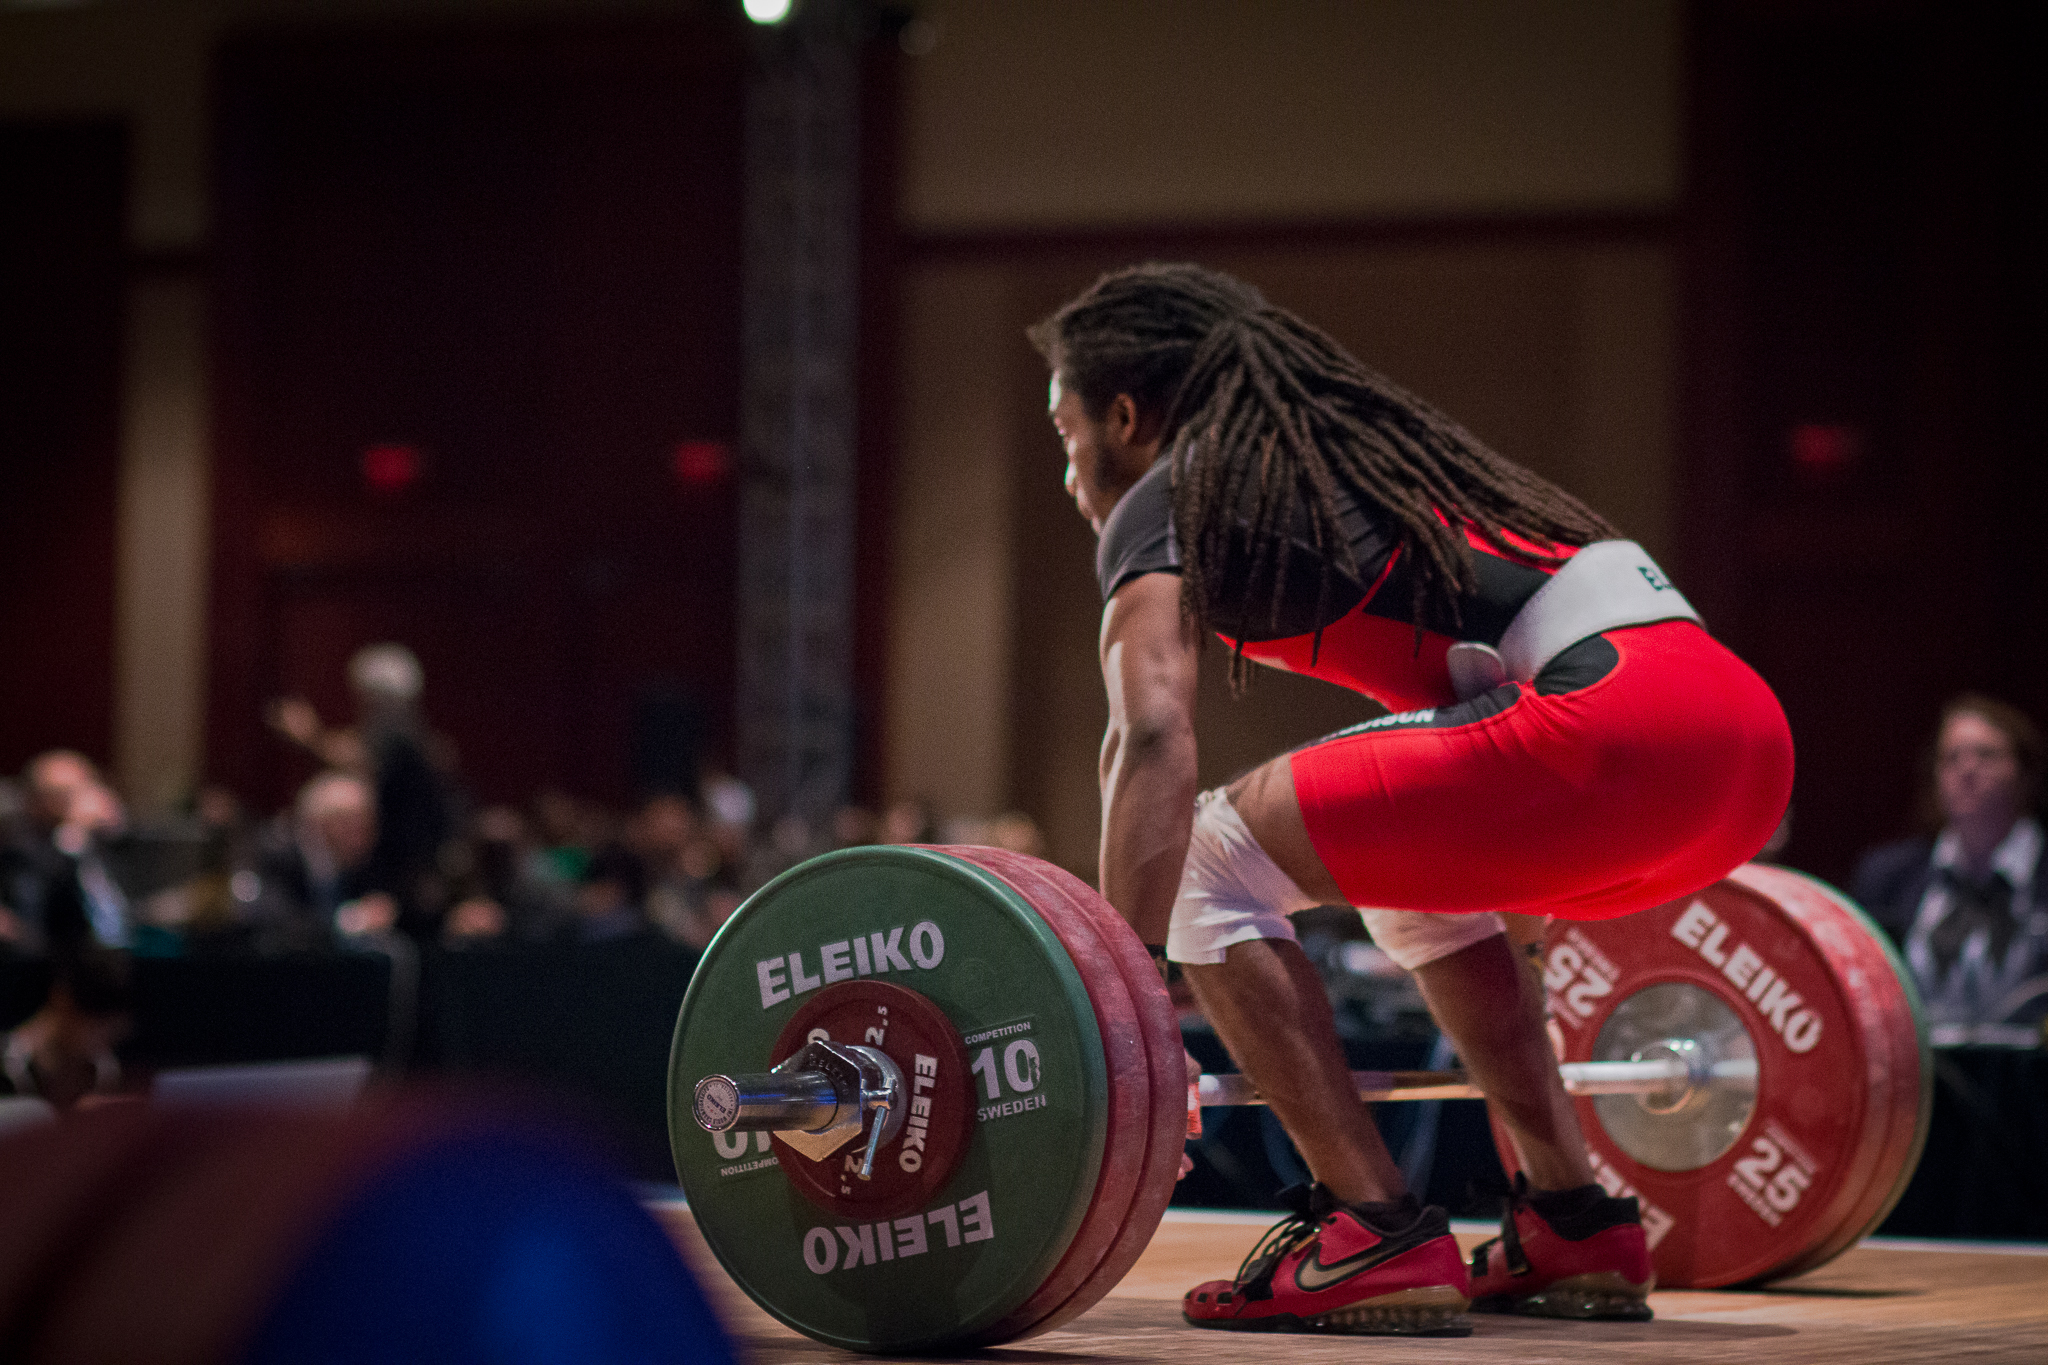 session-a-favorites-american-open-2016-weightlifting-photography (11 of 38).jpg